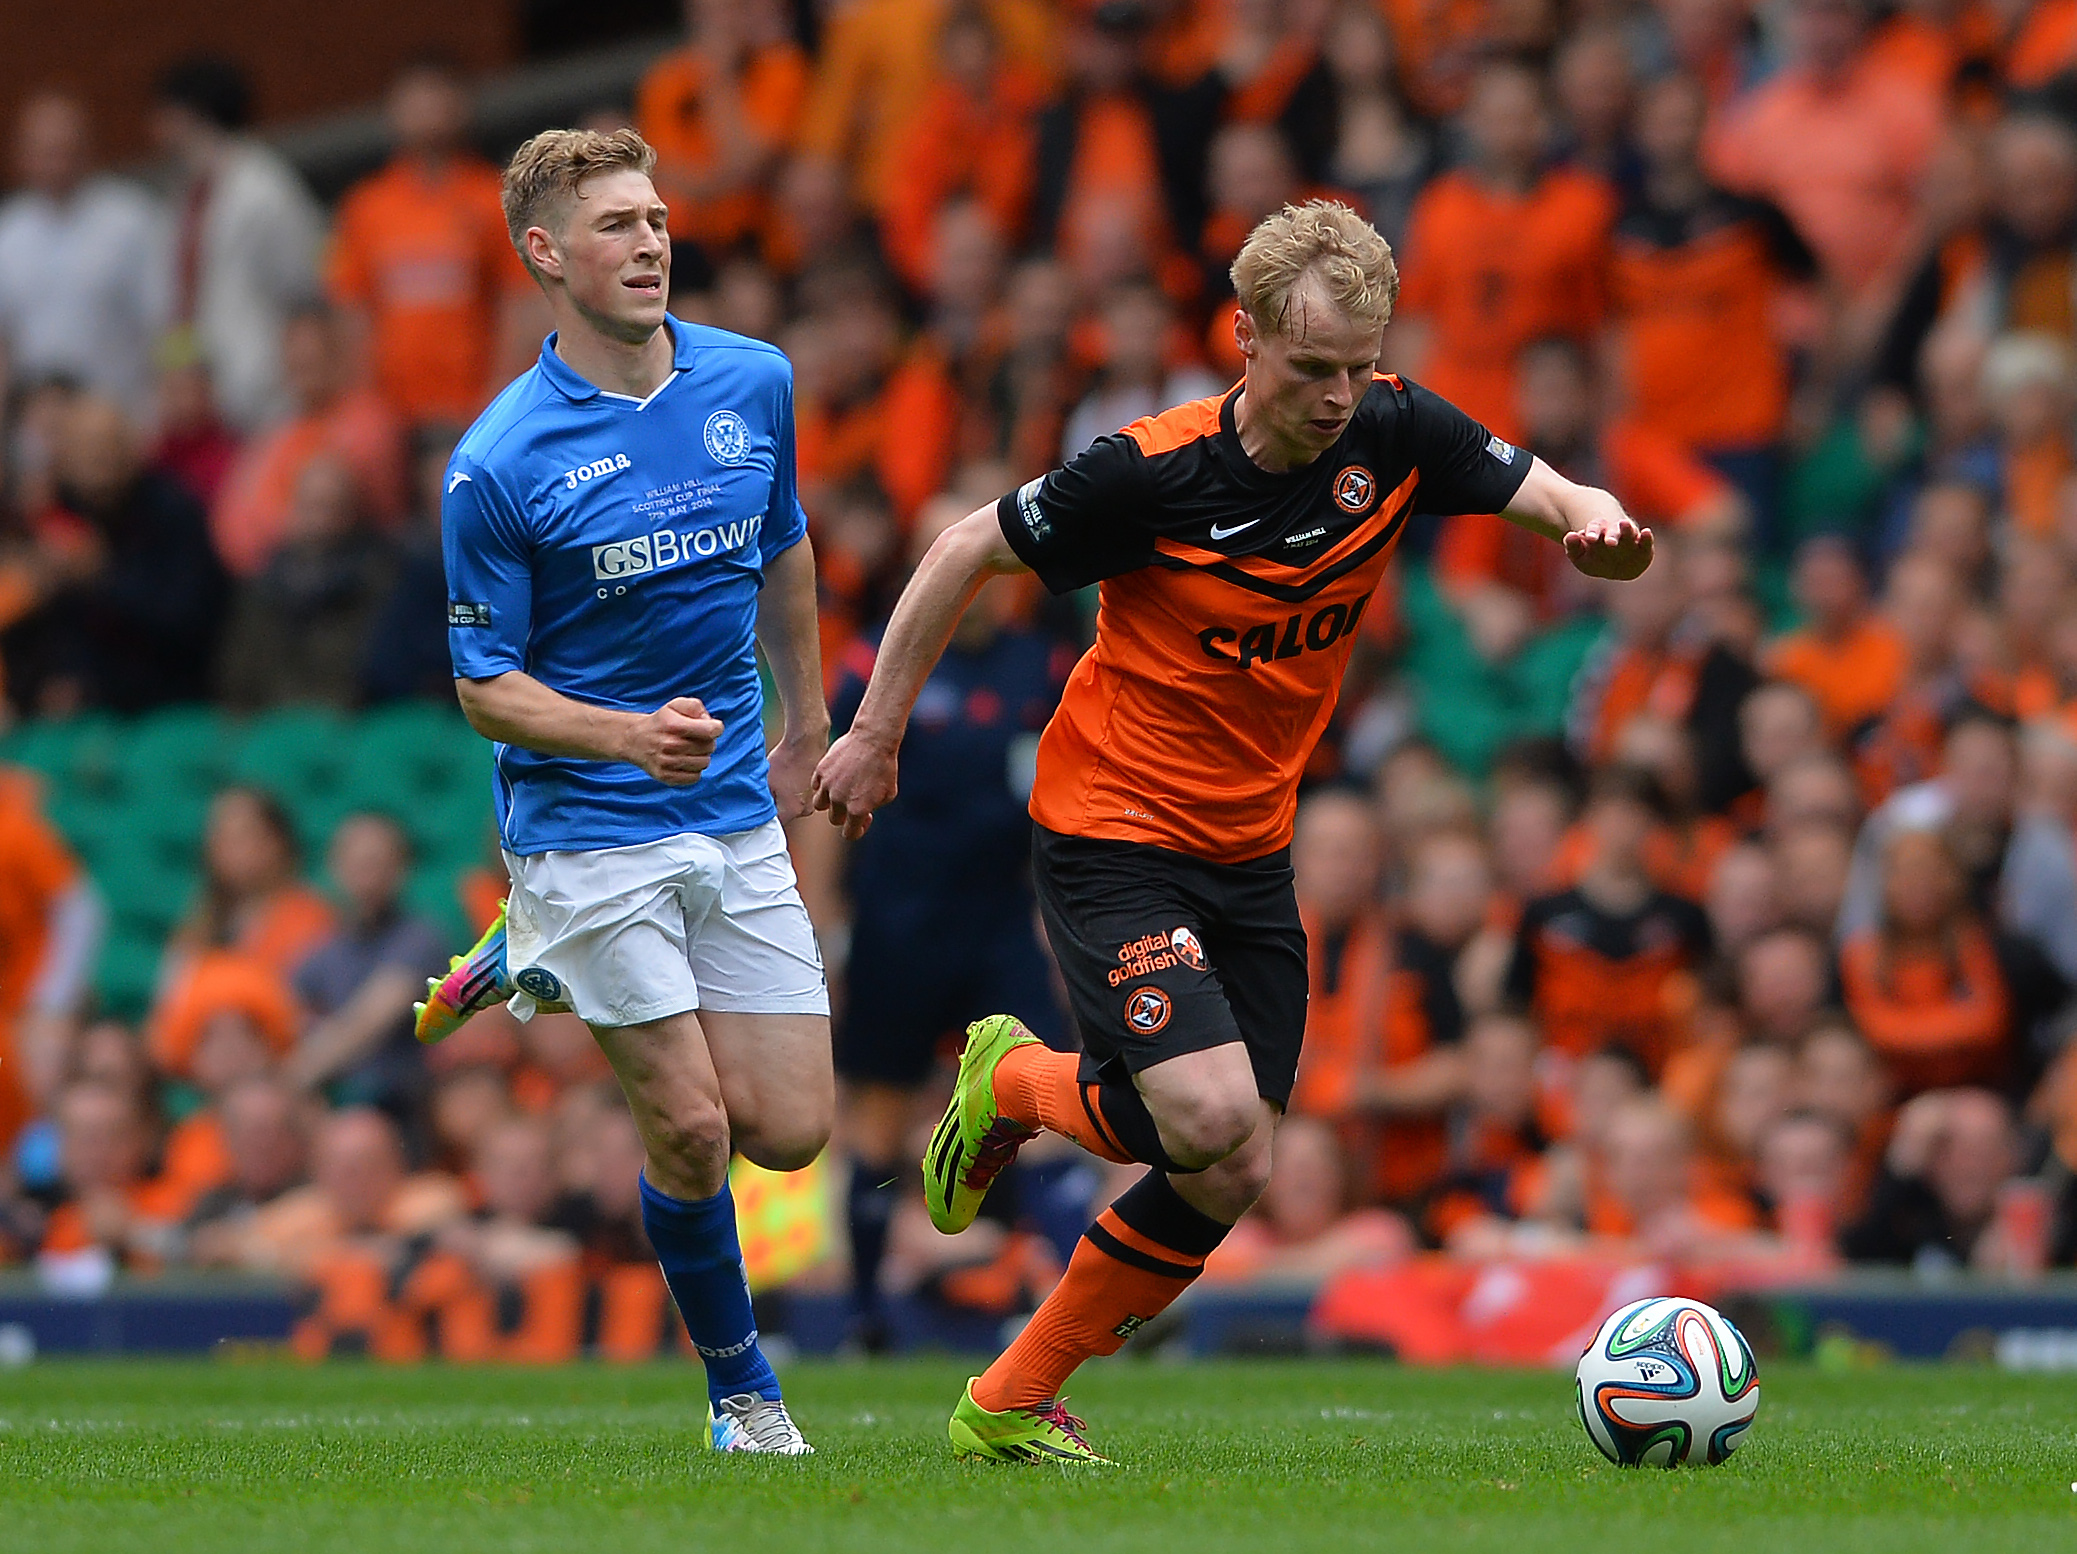 St Johnstone v Dundee United - The William Hill Scottish Cup Final